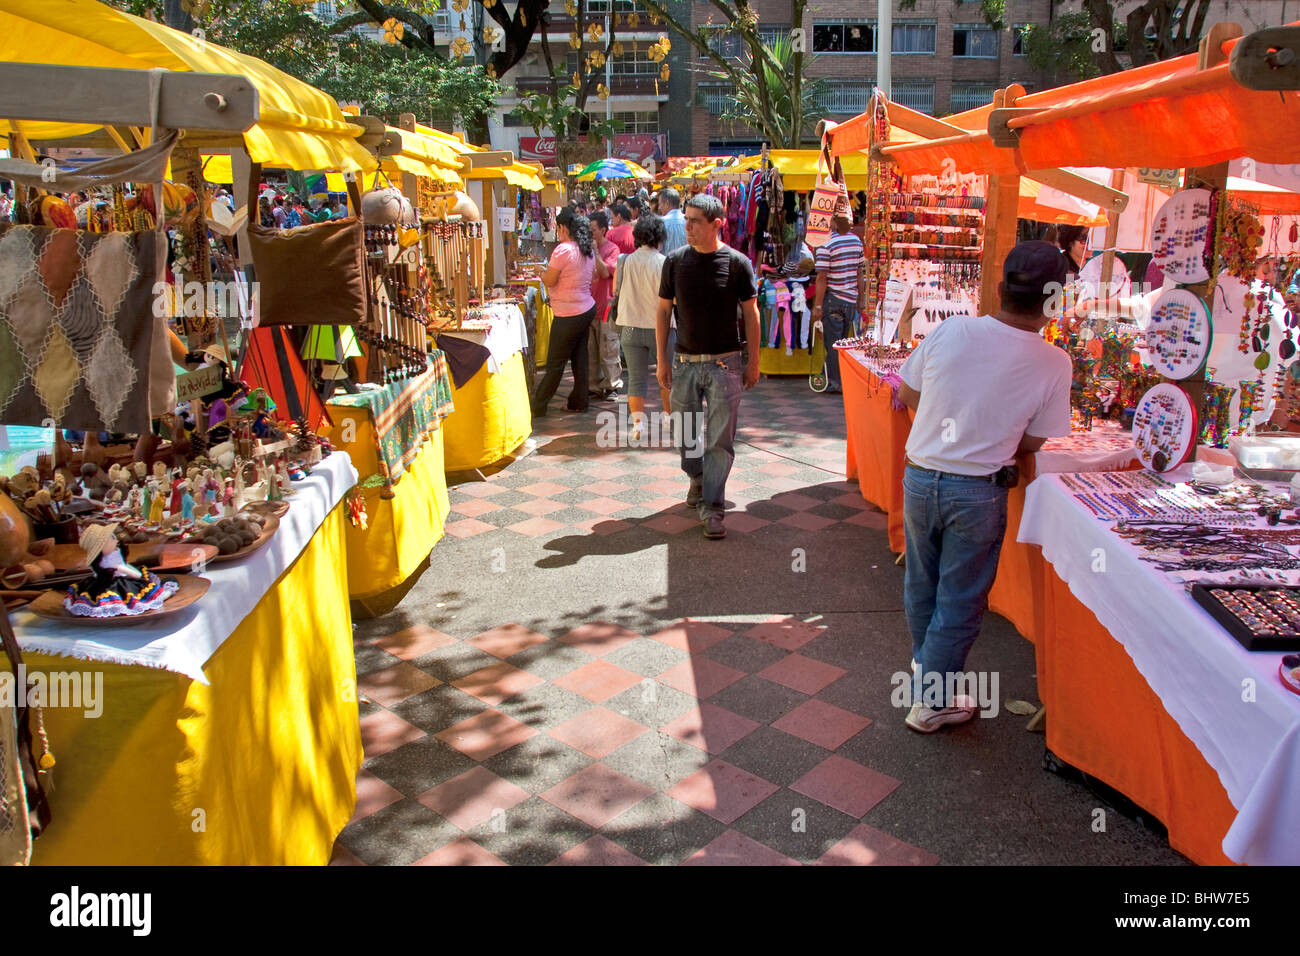 Colombia, Mercado de San Alejo, student craft and art fair held 1st Saturday of the month in Parque Bolivar, La - Stock Image